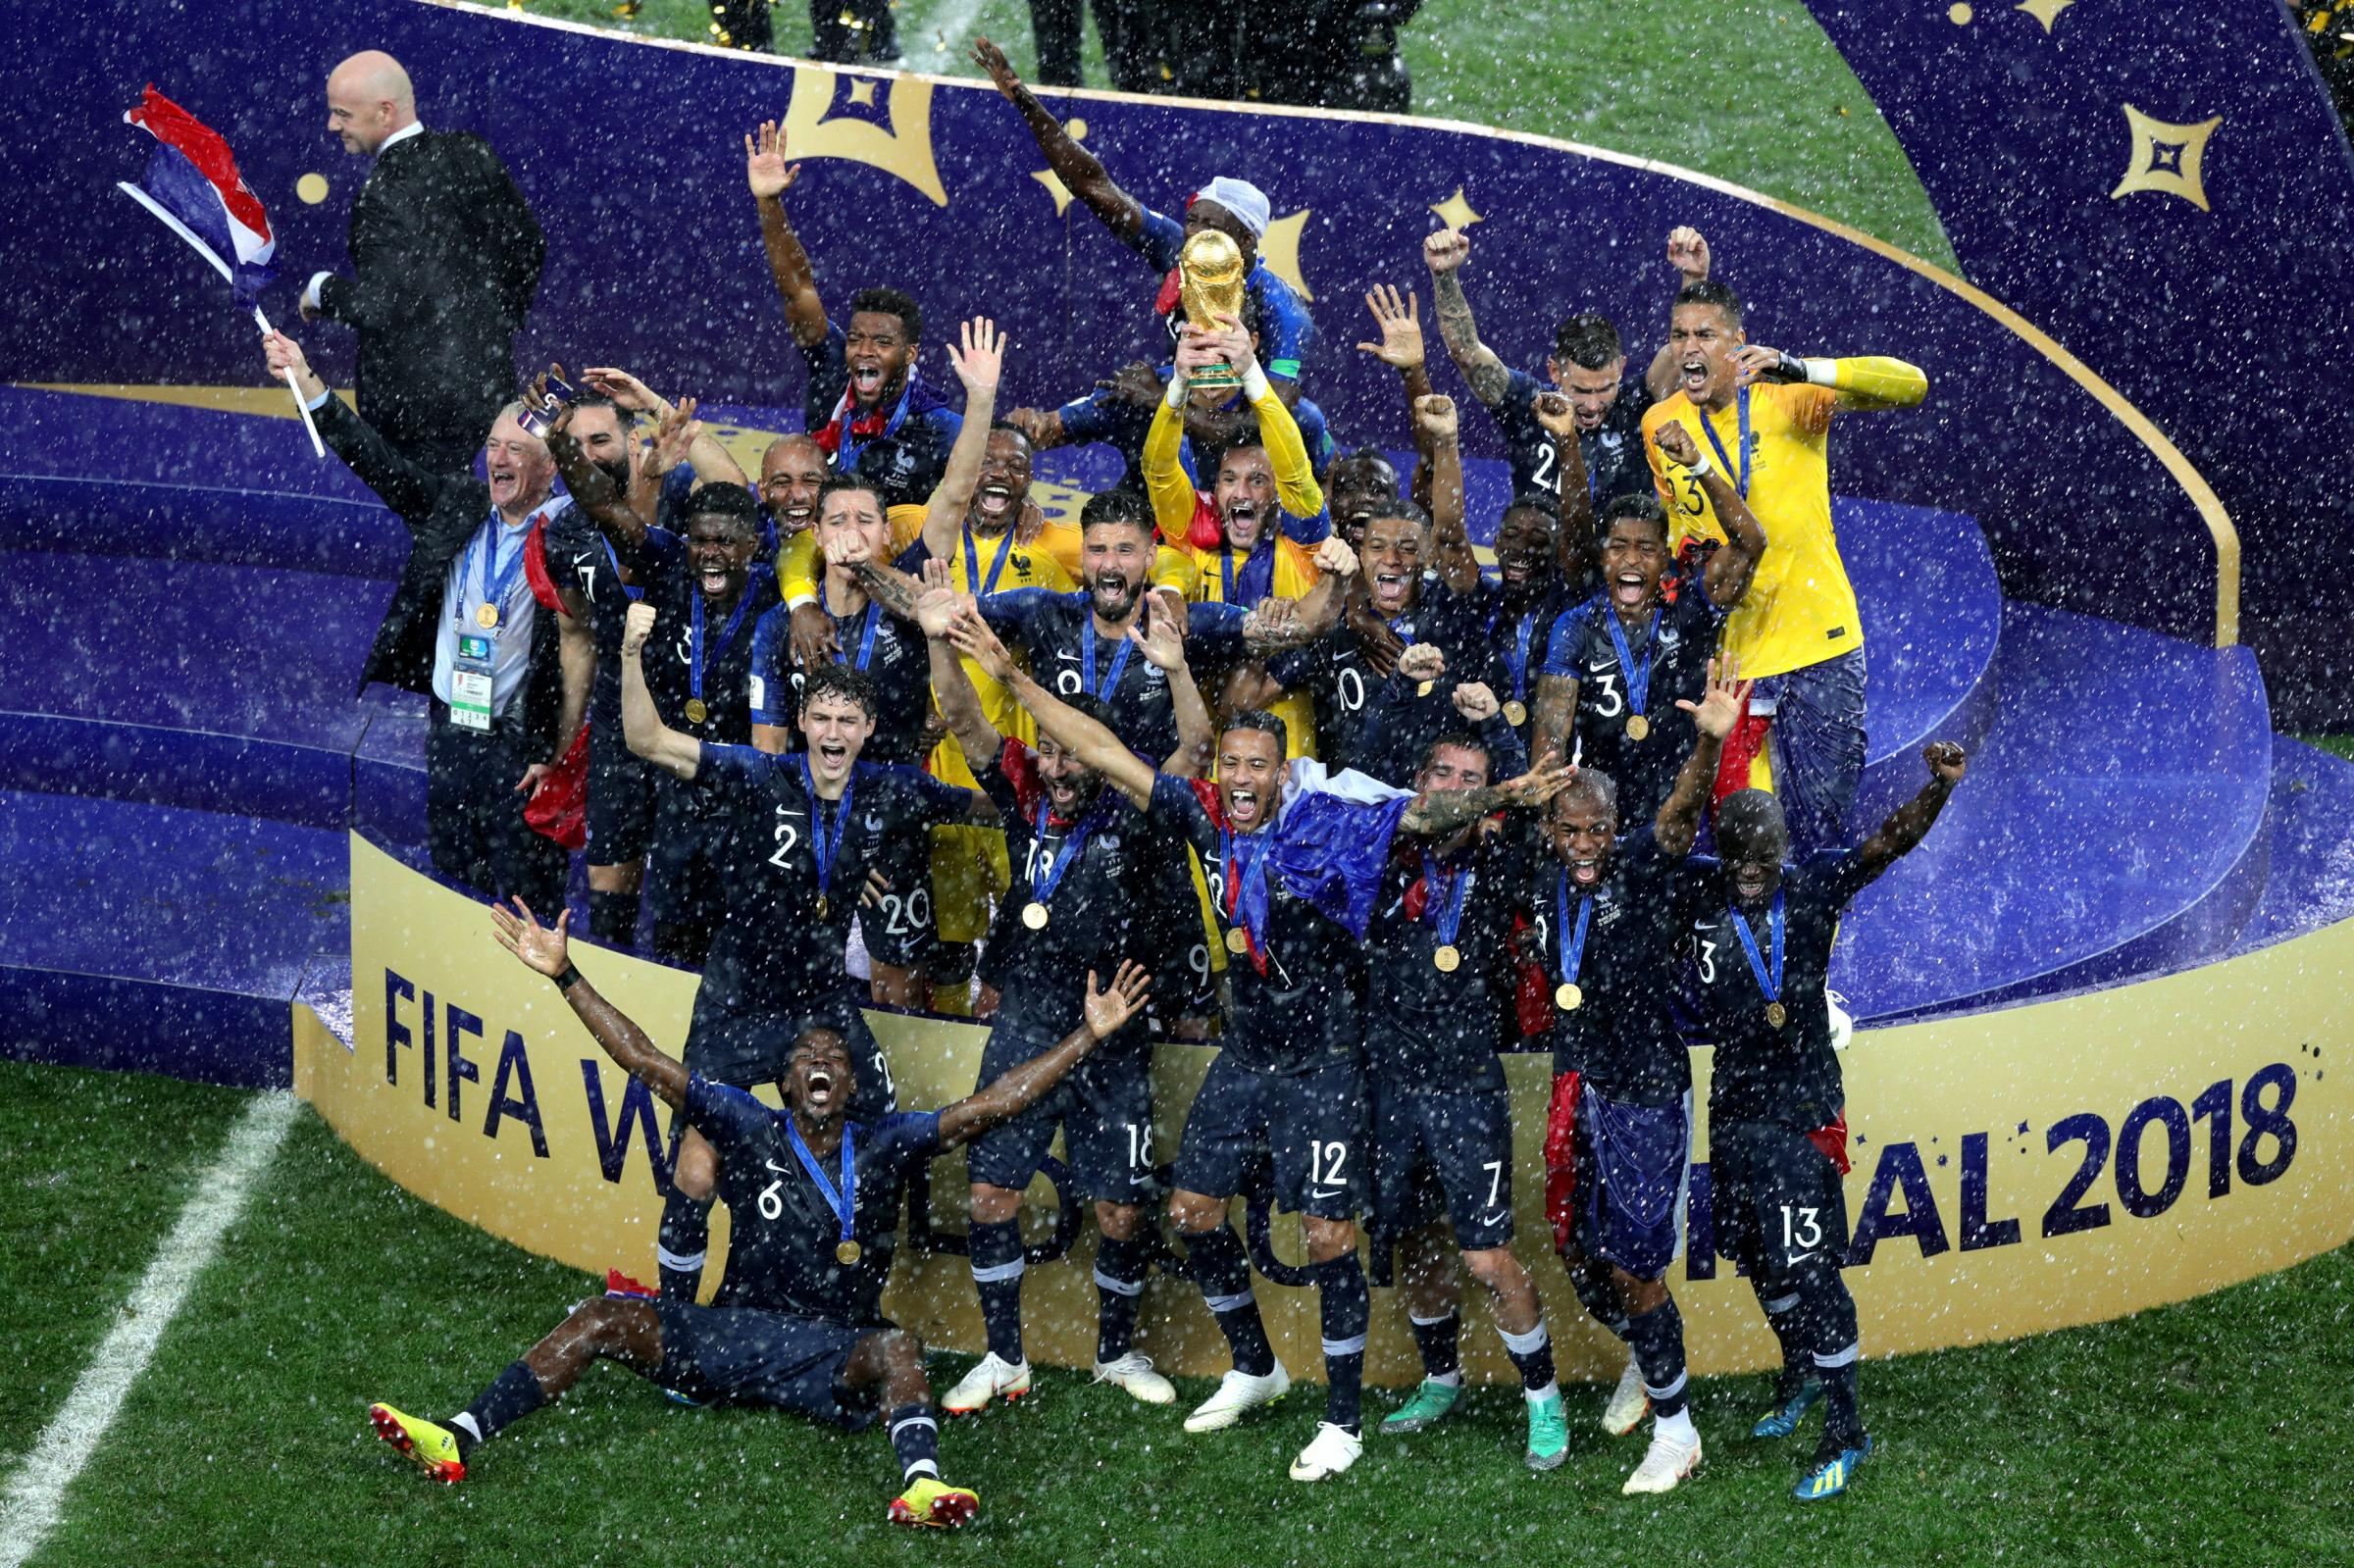 France celebrate with the trophy after winning the FIFA World Cup Final at the Luzhniki Stadium, Moscow. PRESS ASSOCIATION Photo. Picture date: Sunday July 15, 2018. See PA story WORLDCUP Final. Photo credit should read: Aaron Chown/PA Wire. RESTRICTIONS: